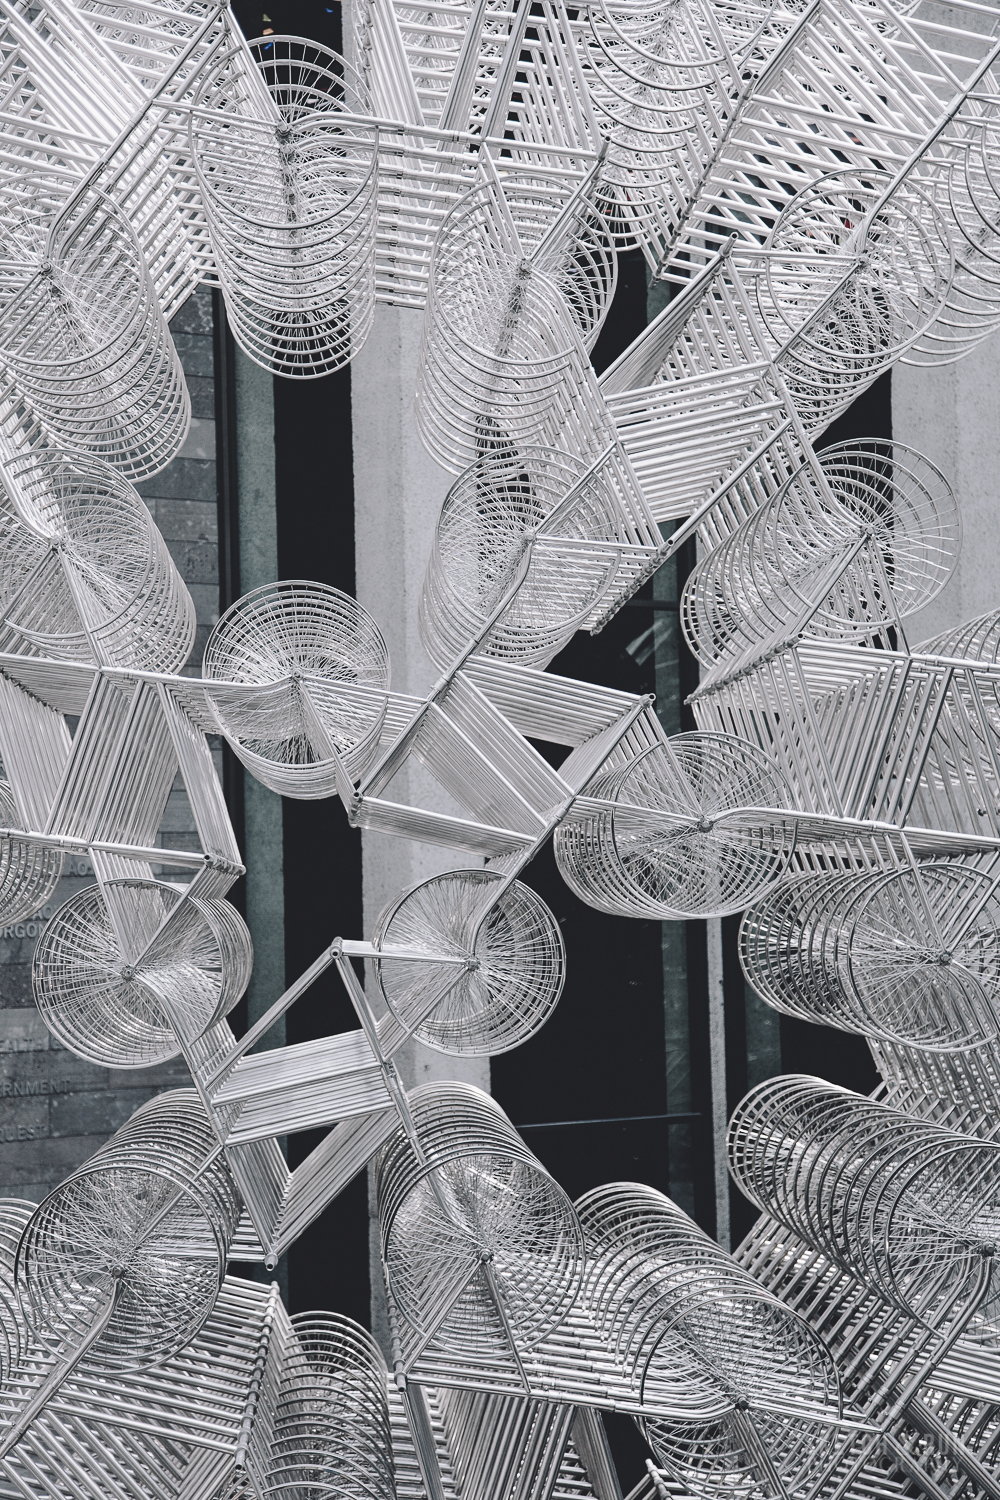 forever bicycles, ai wei wei, national gallery of victoria, art, installation